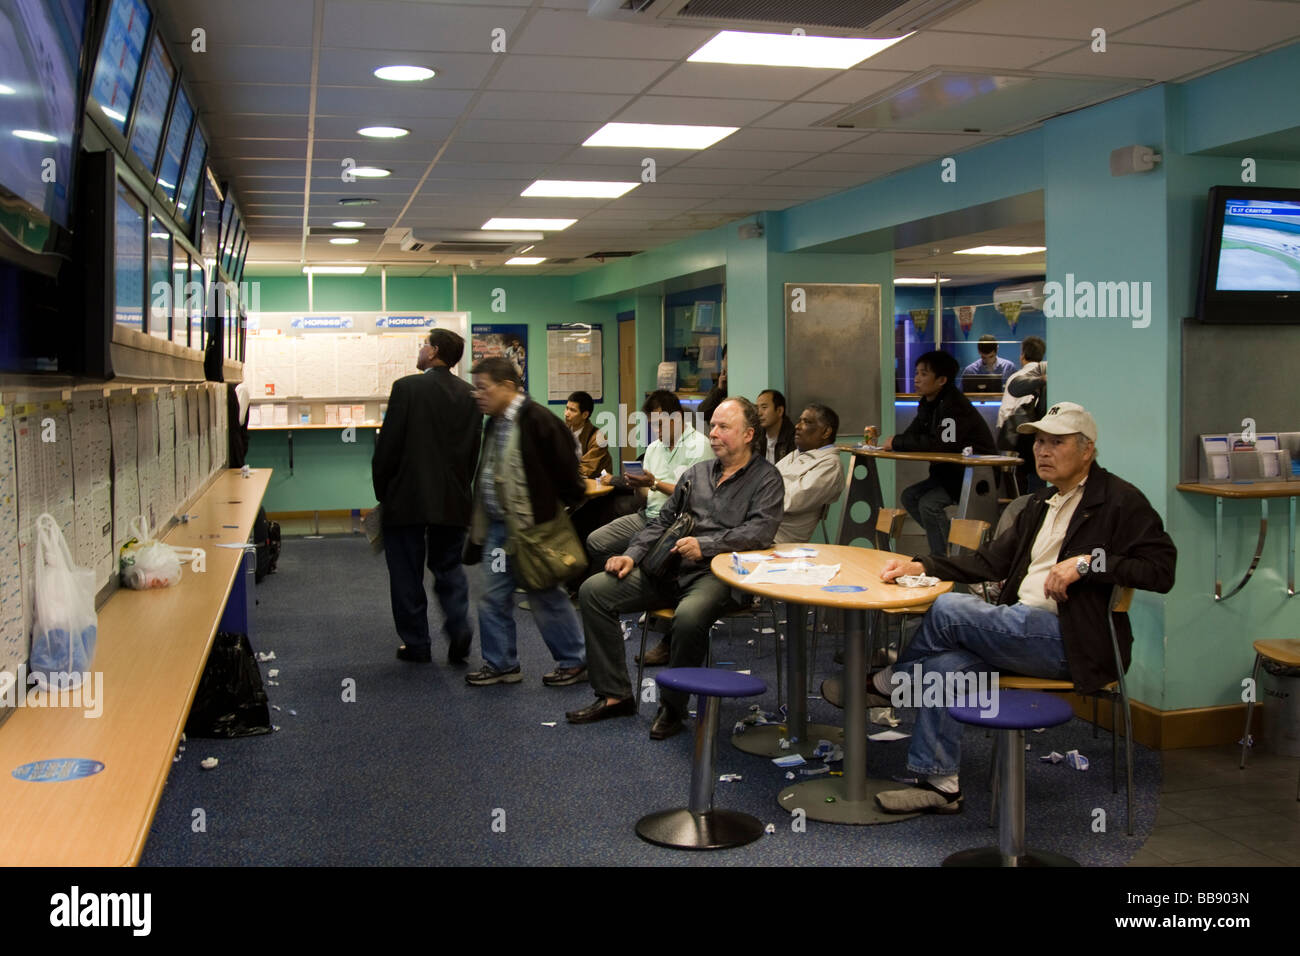 Betting Shop - Chinatown - London - Stock Image